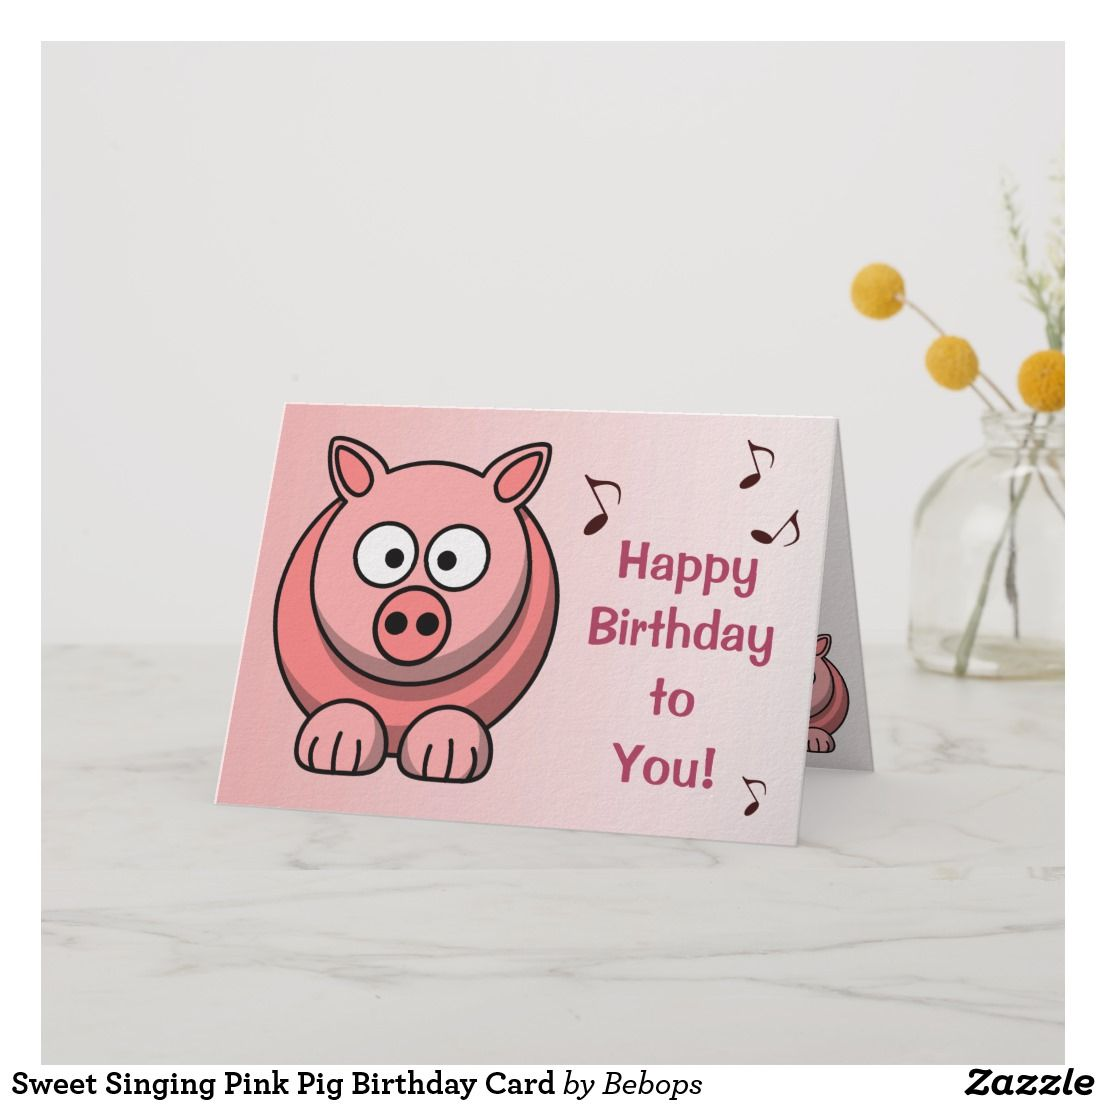 Sweet Singing Pink Pig Birthday Card